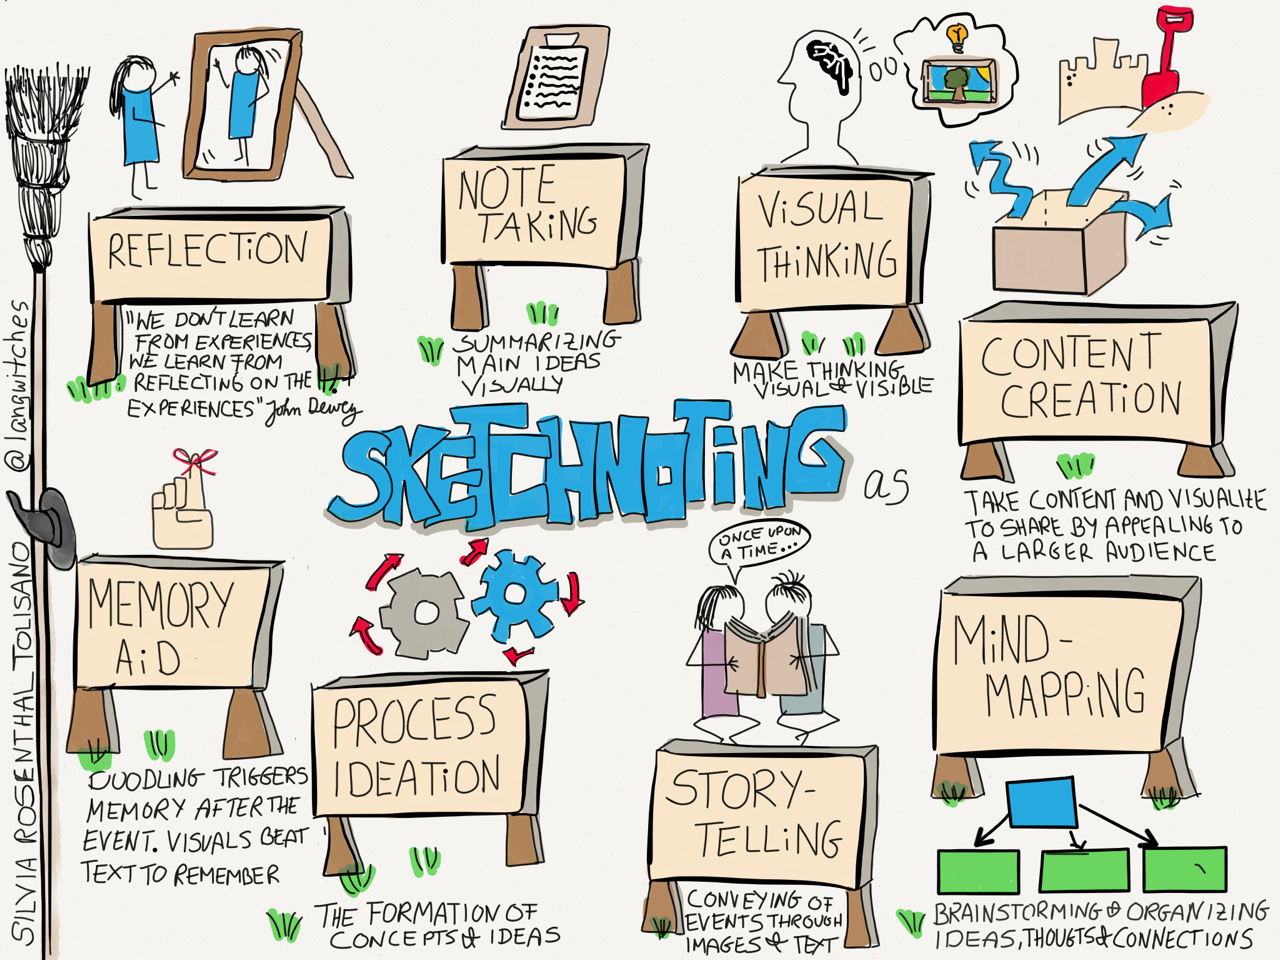 Sketchnoting-as-by-tolisano